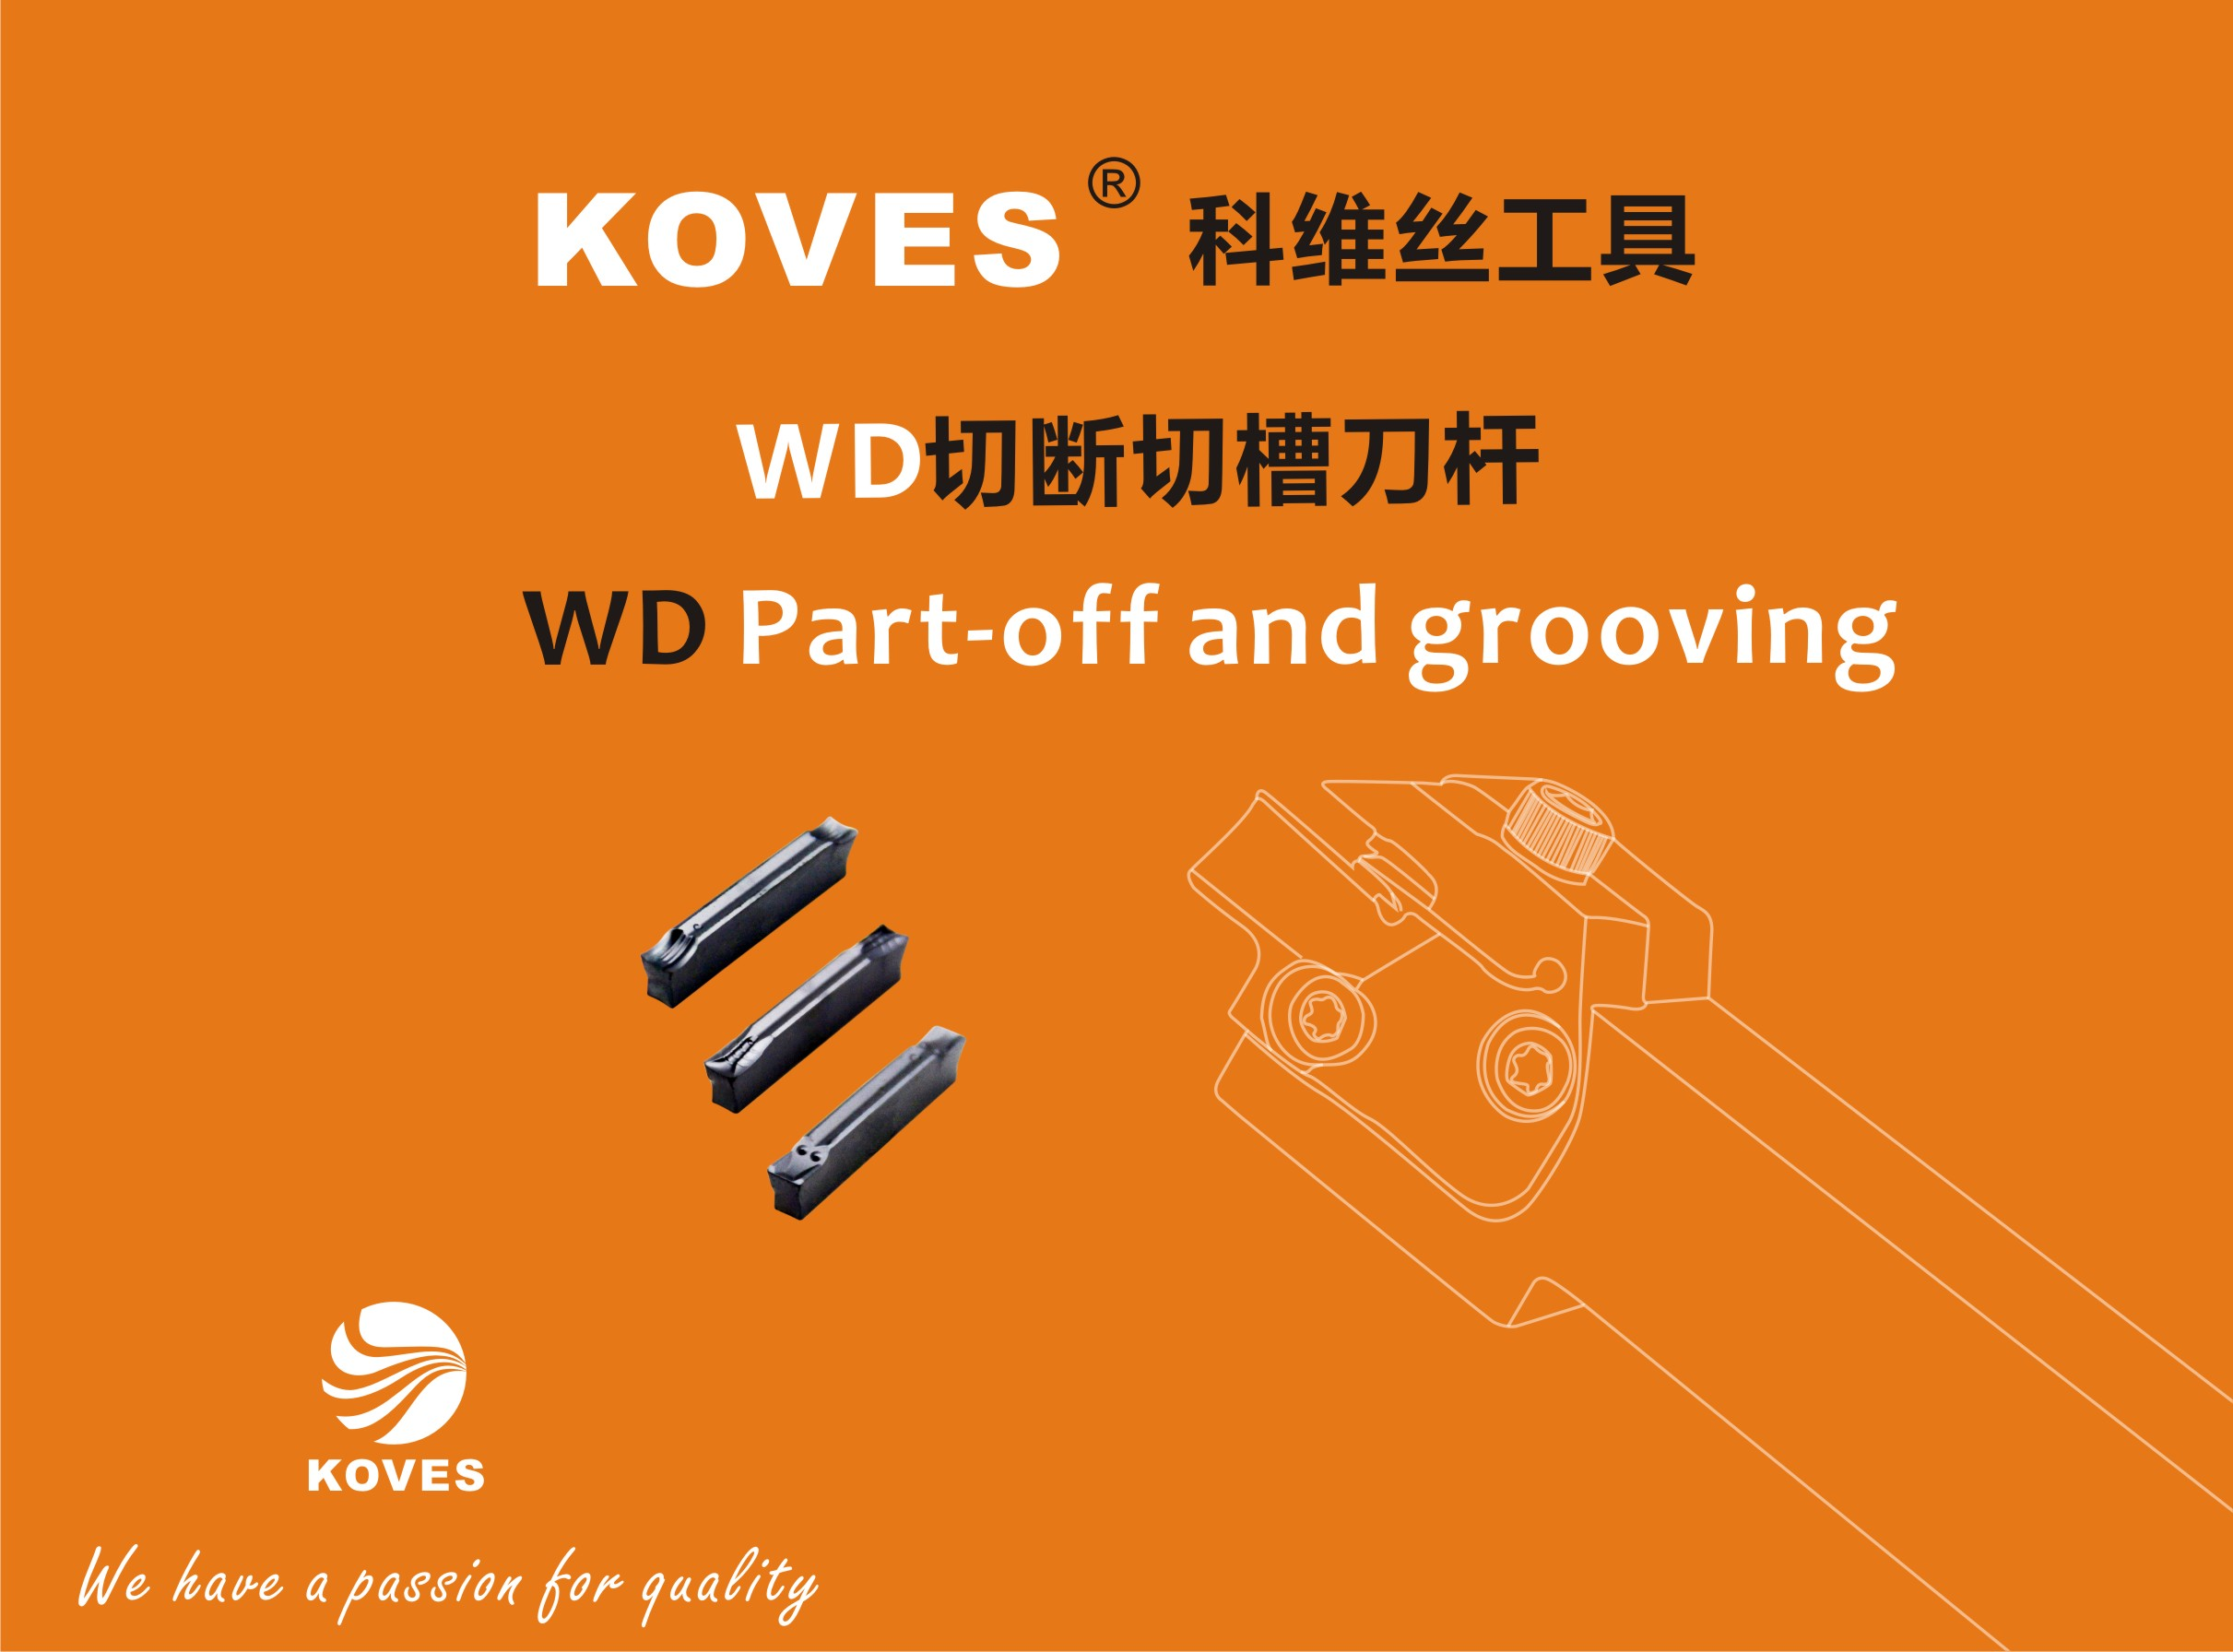 <b>WD Moular Parting And Grooving Tools</b>